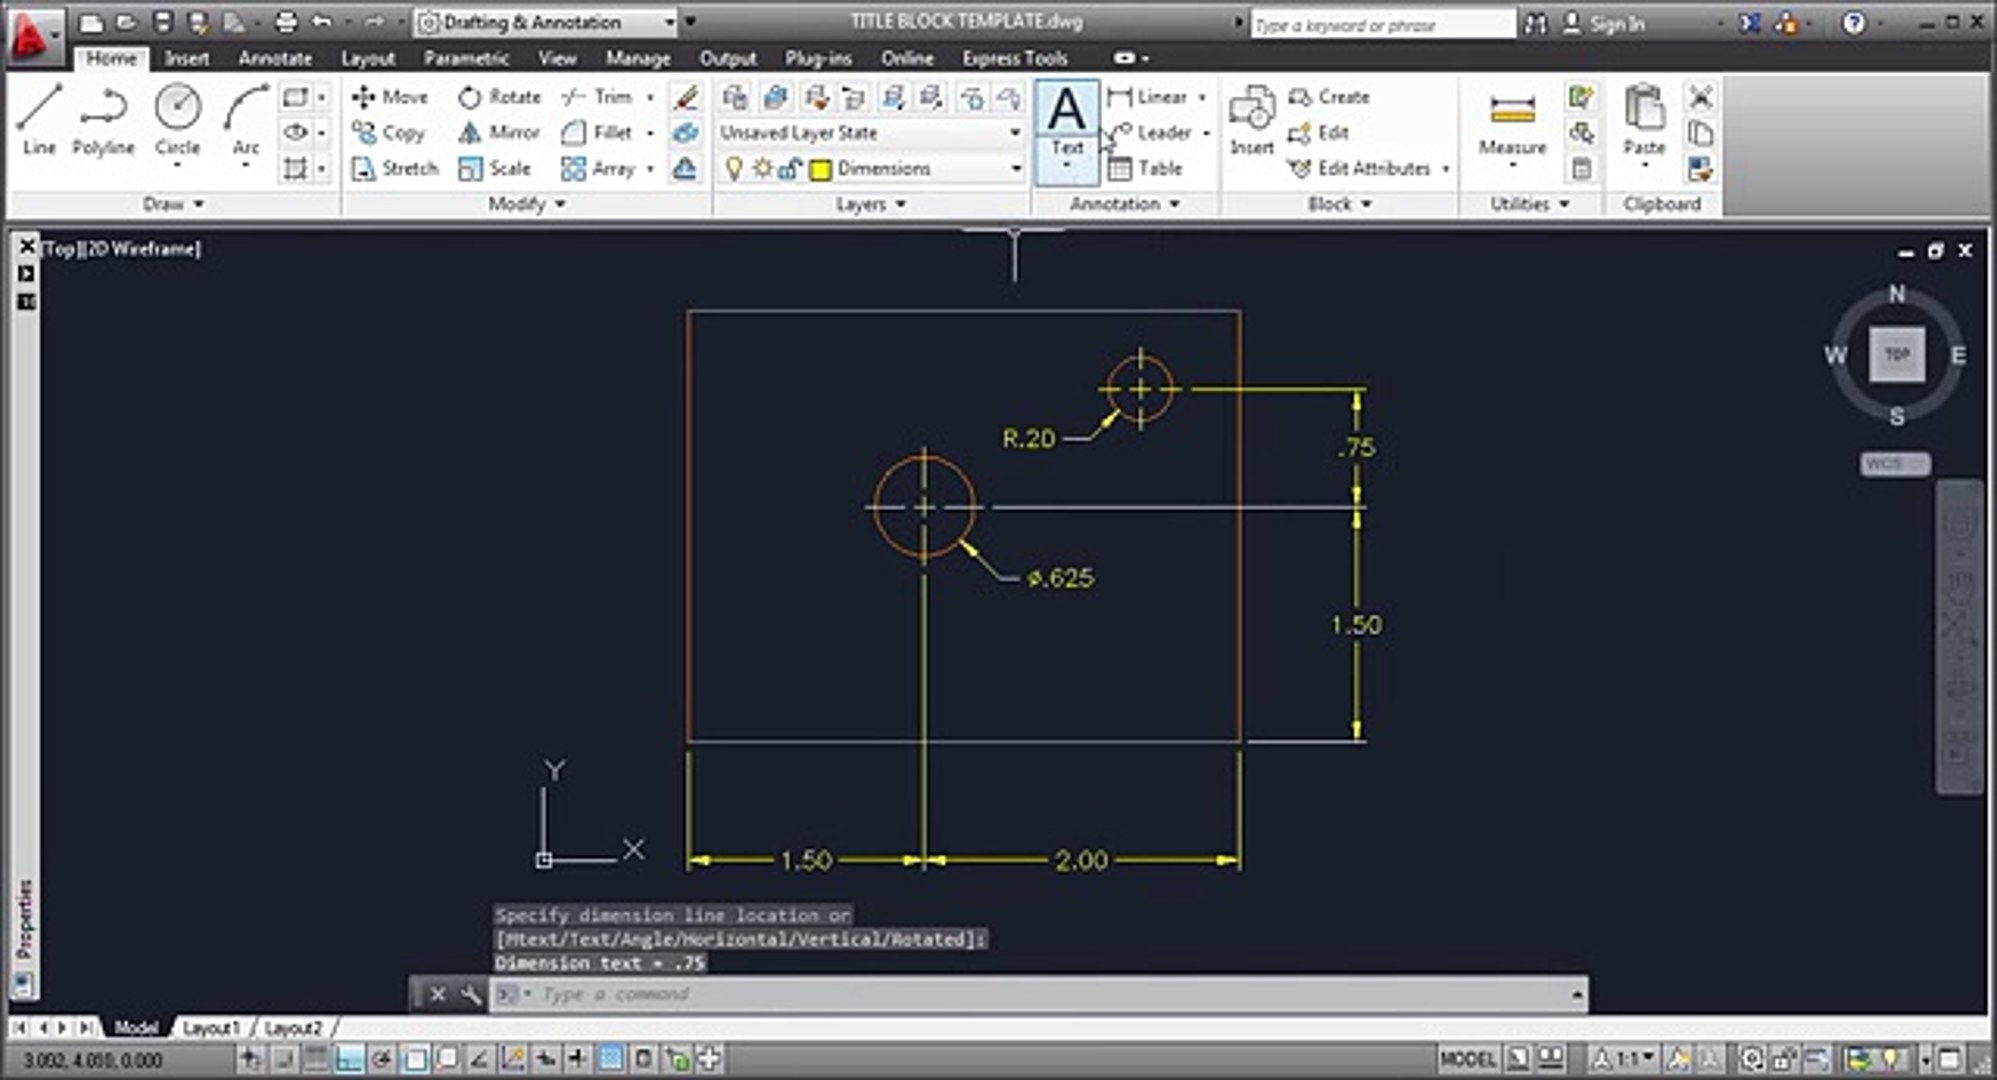 AutoCAD 2013 Dimensioning Tutorial  AutoCAD 2013 Dimension  AutoCAD 2013 Dimension Style